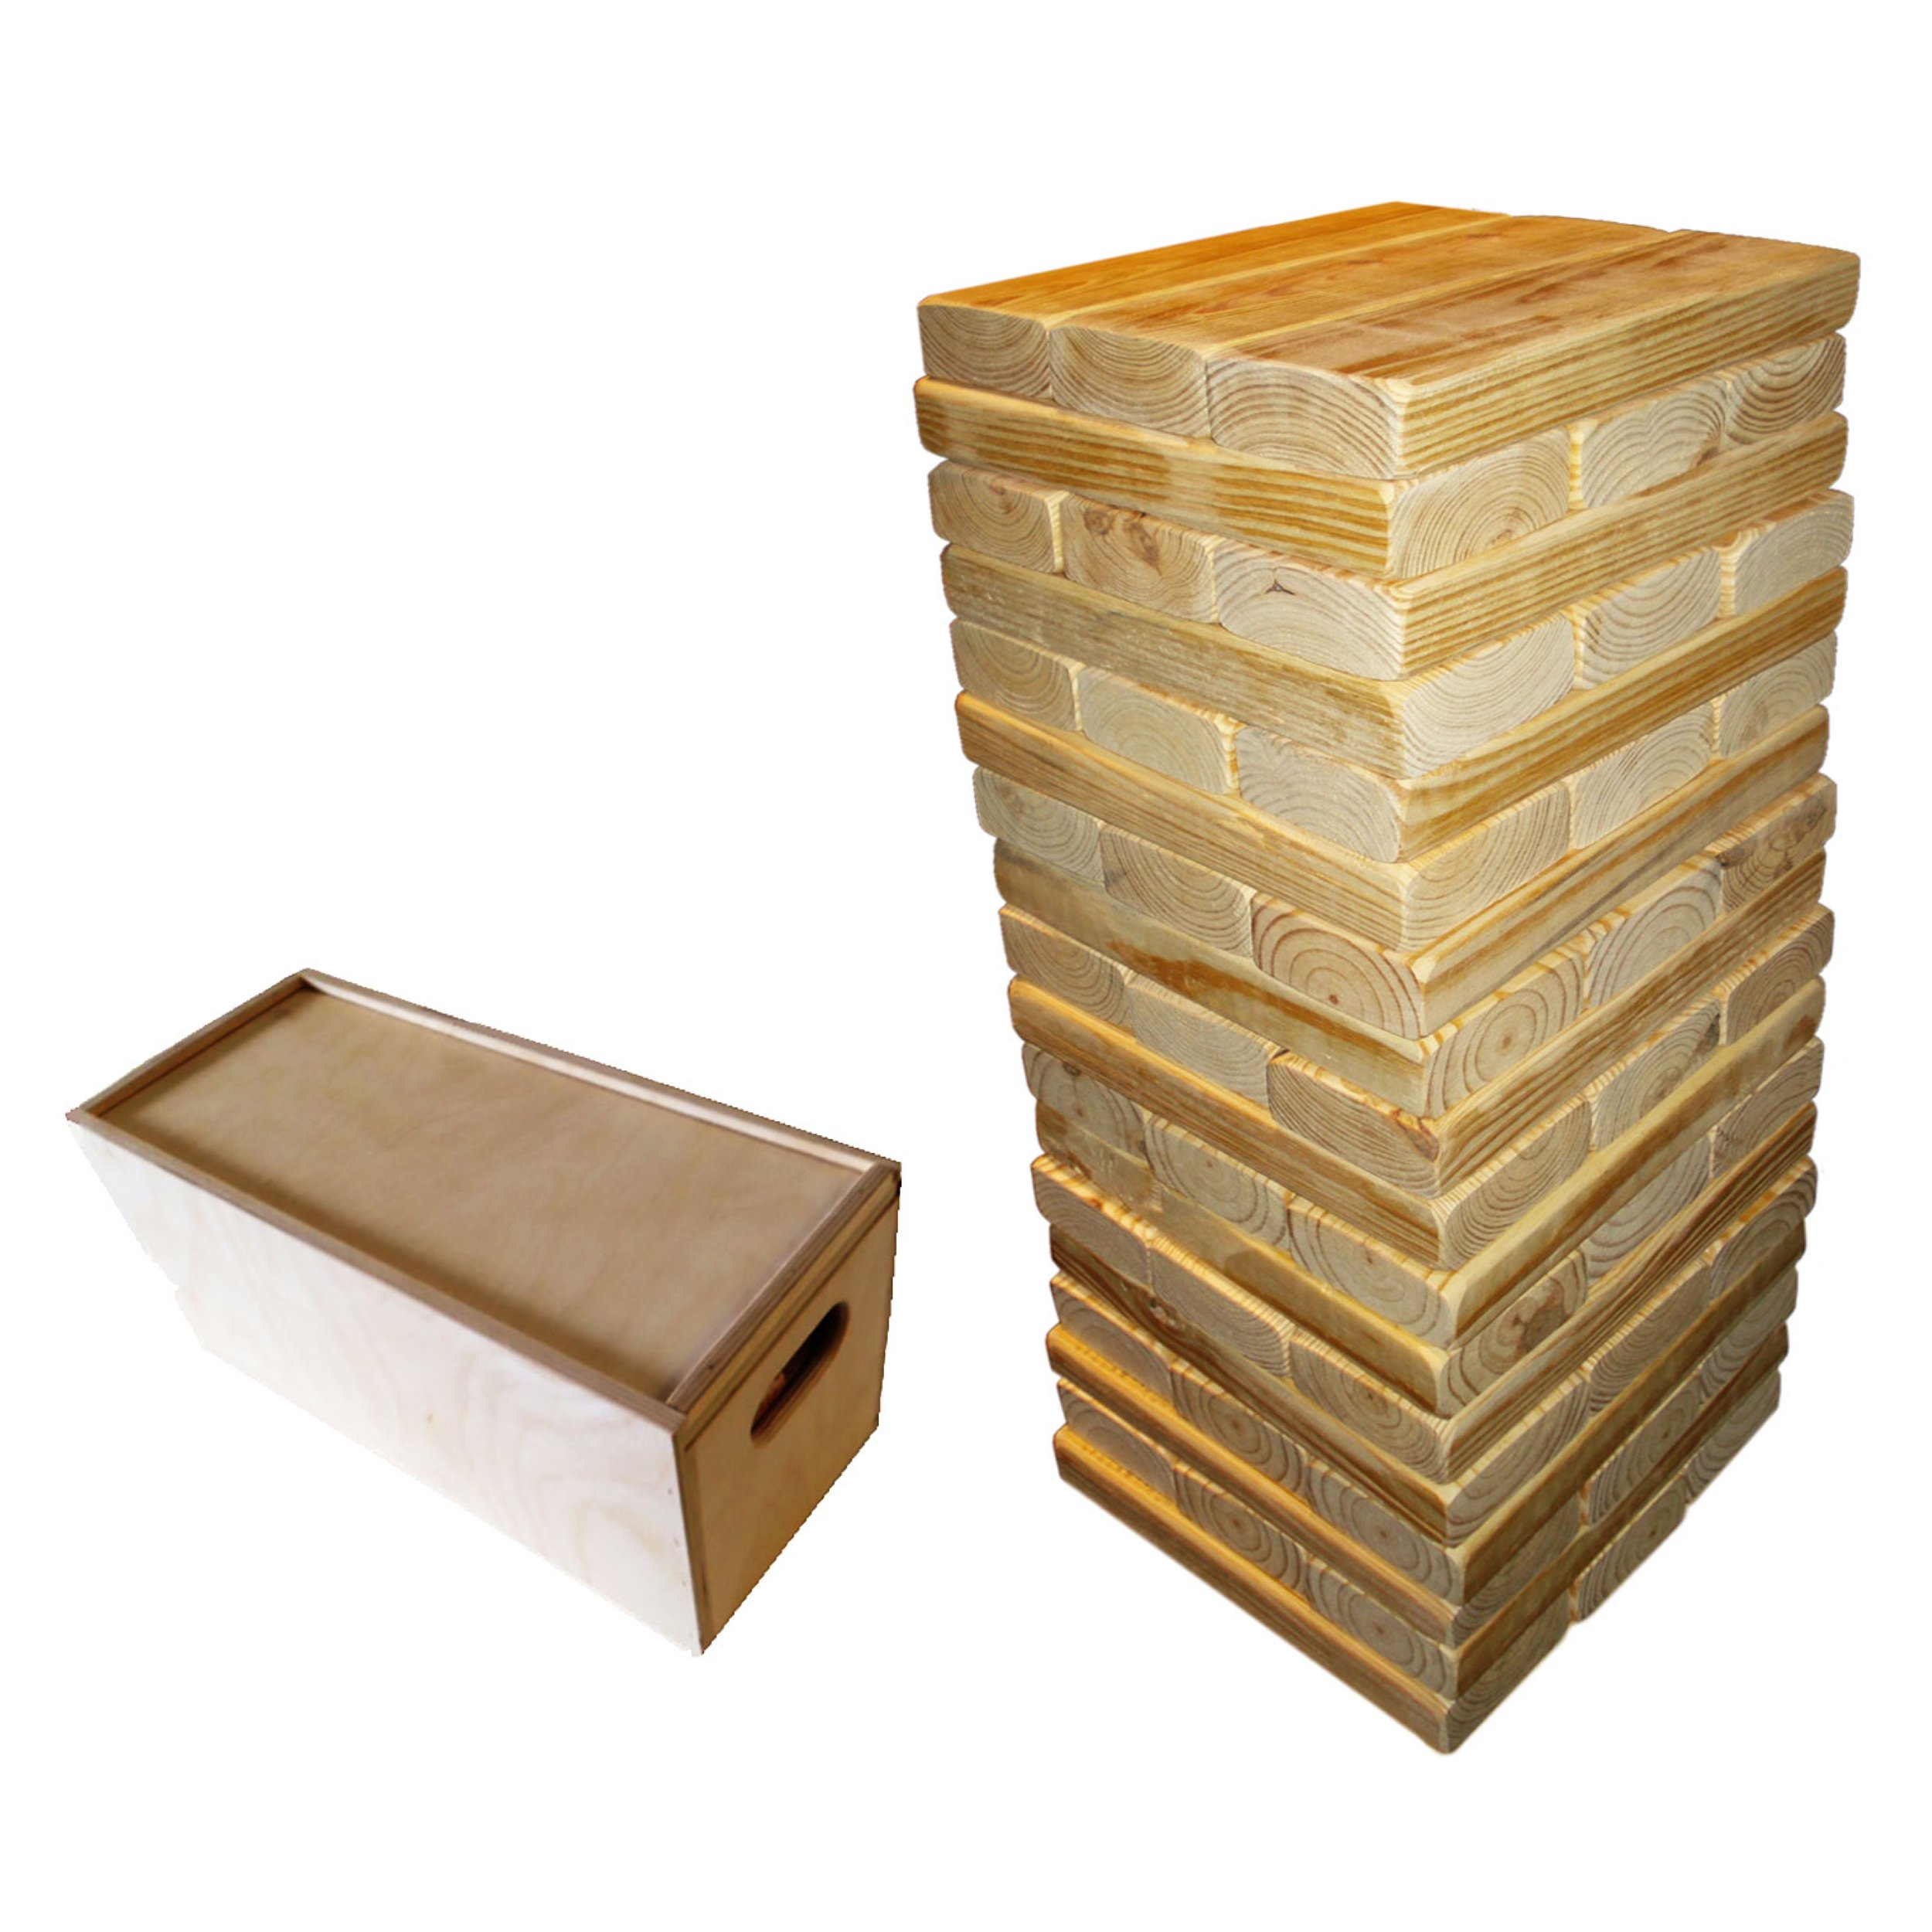 Harvil Jumbo 54-Piece Wooden Tumbling Tower with Wooden Case